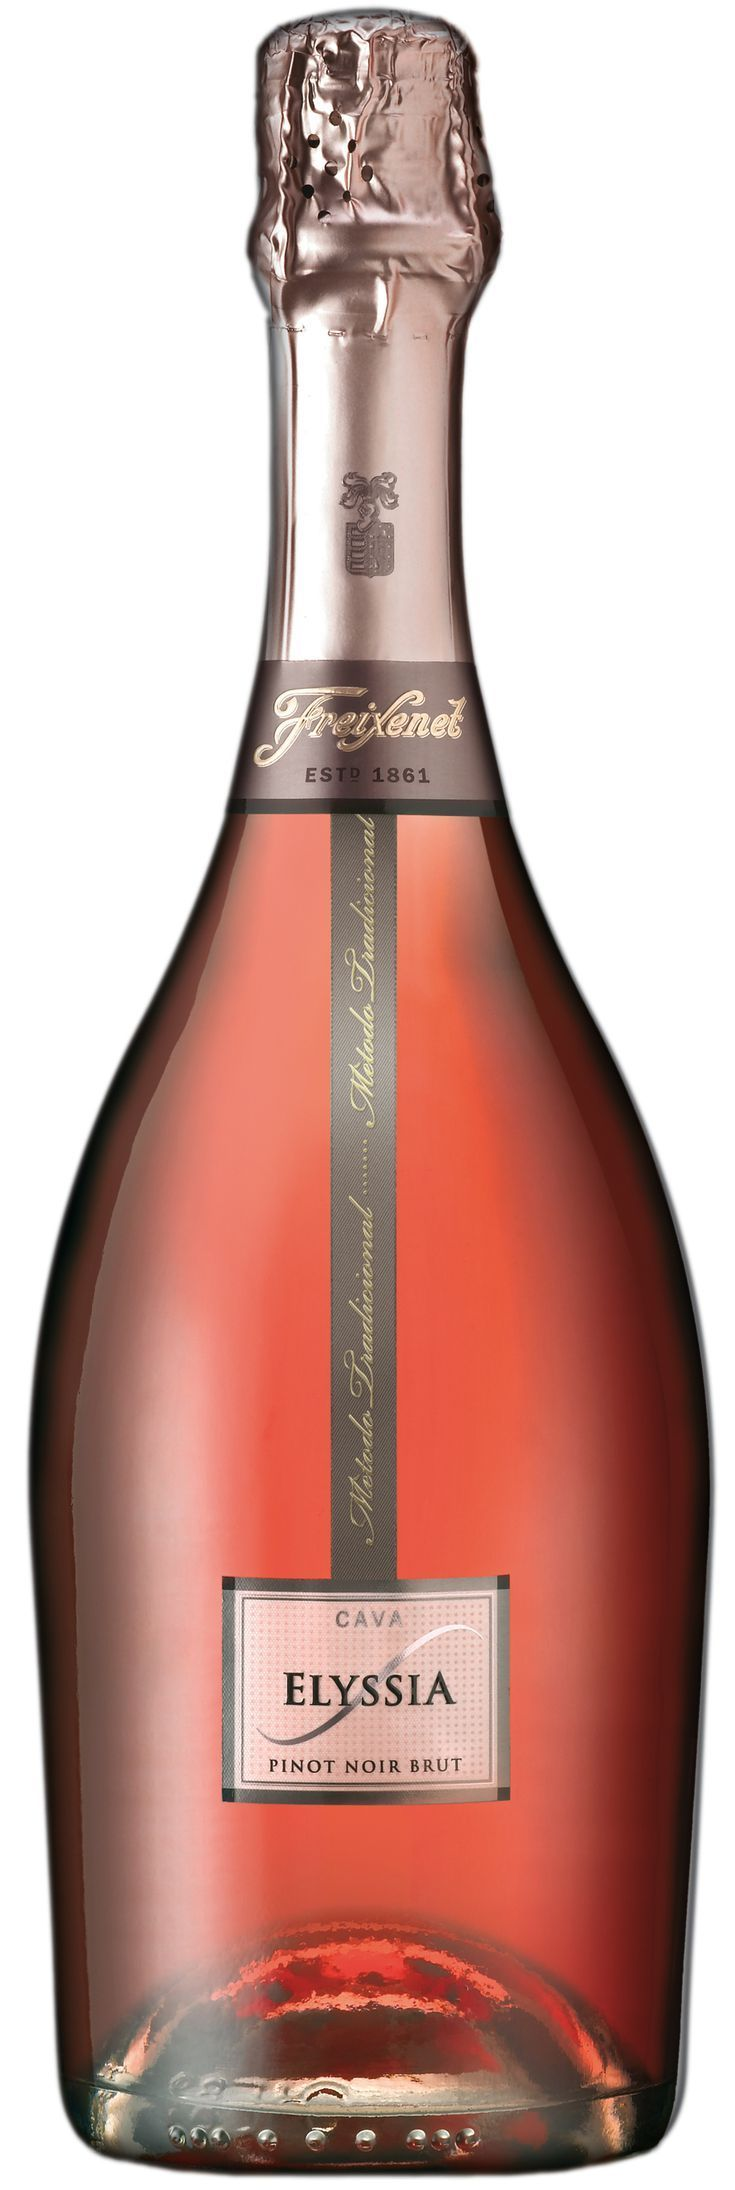 Check Out These Top 6 Cava Sparkling Wine Brands To Try Cava Sparkling Wine Sparkling Wine Brands Sparkling Wine